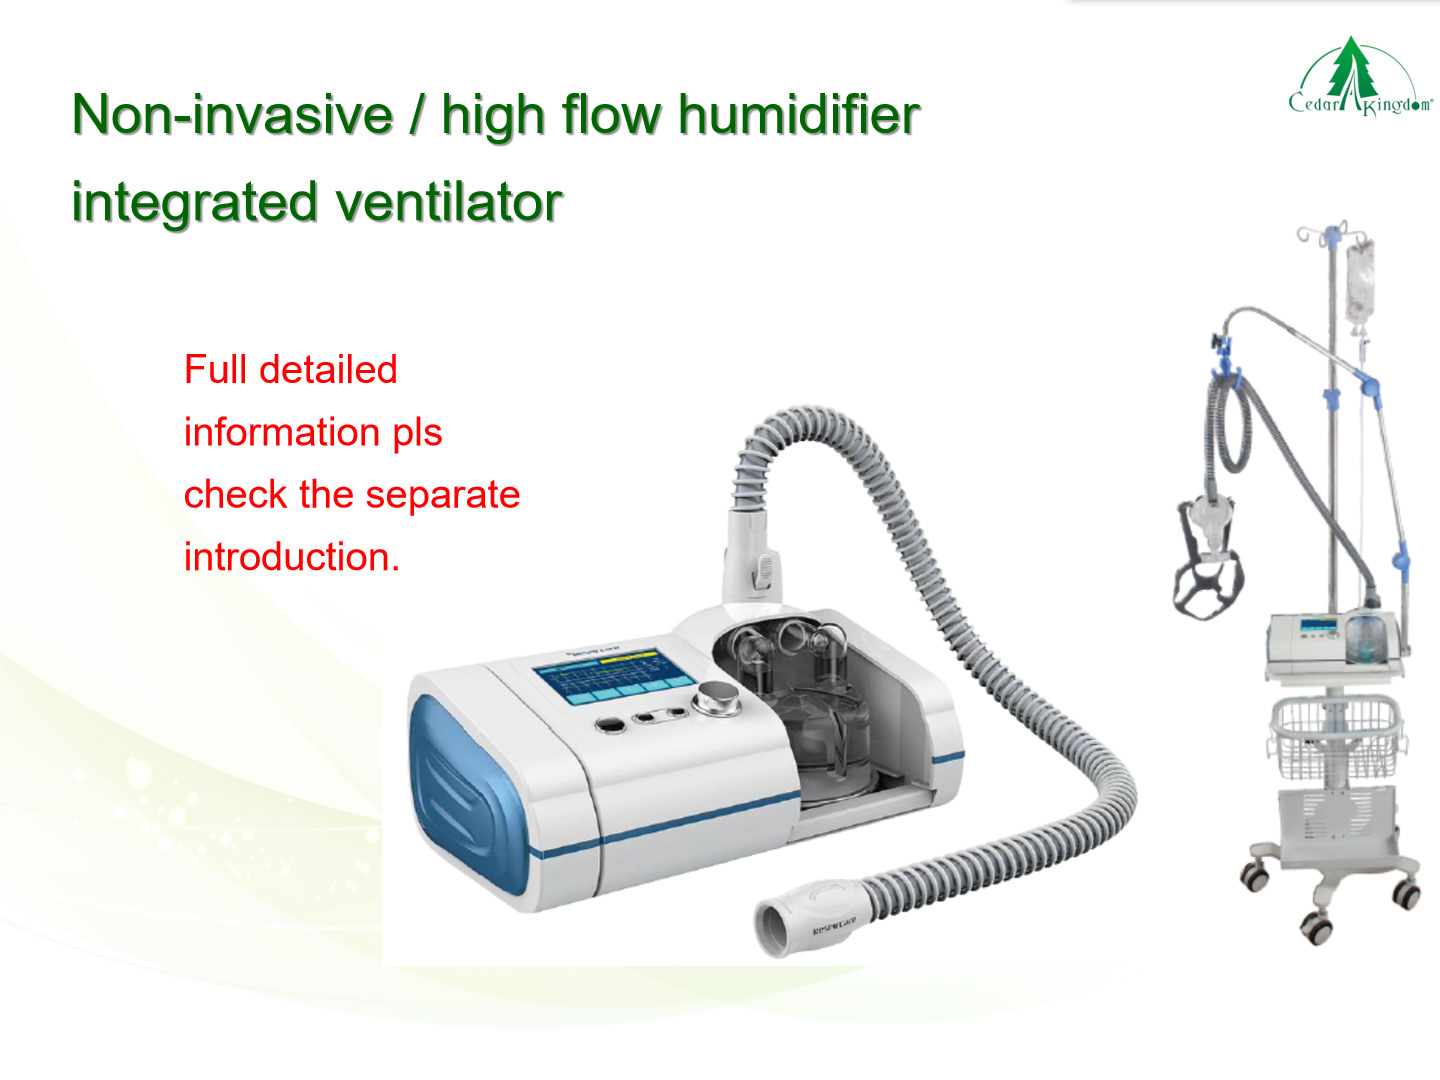 Non-invasive-high-flow-humidifier-integrated-ventilator